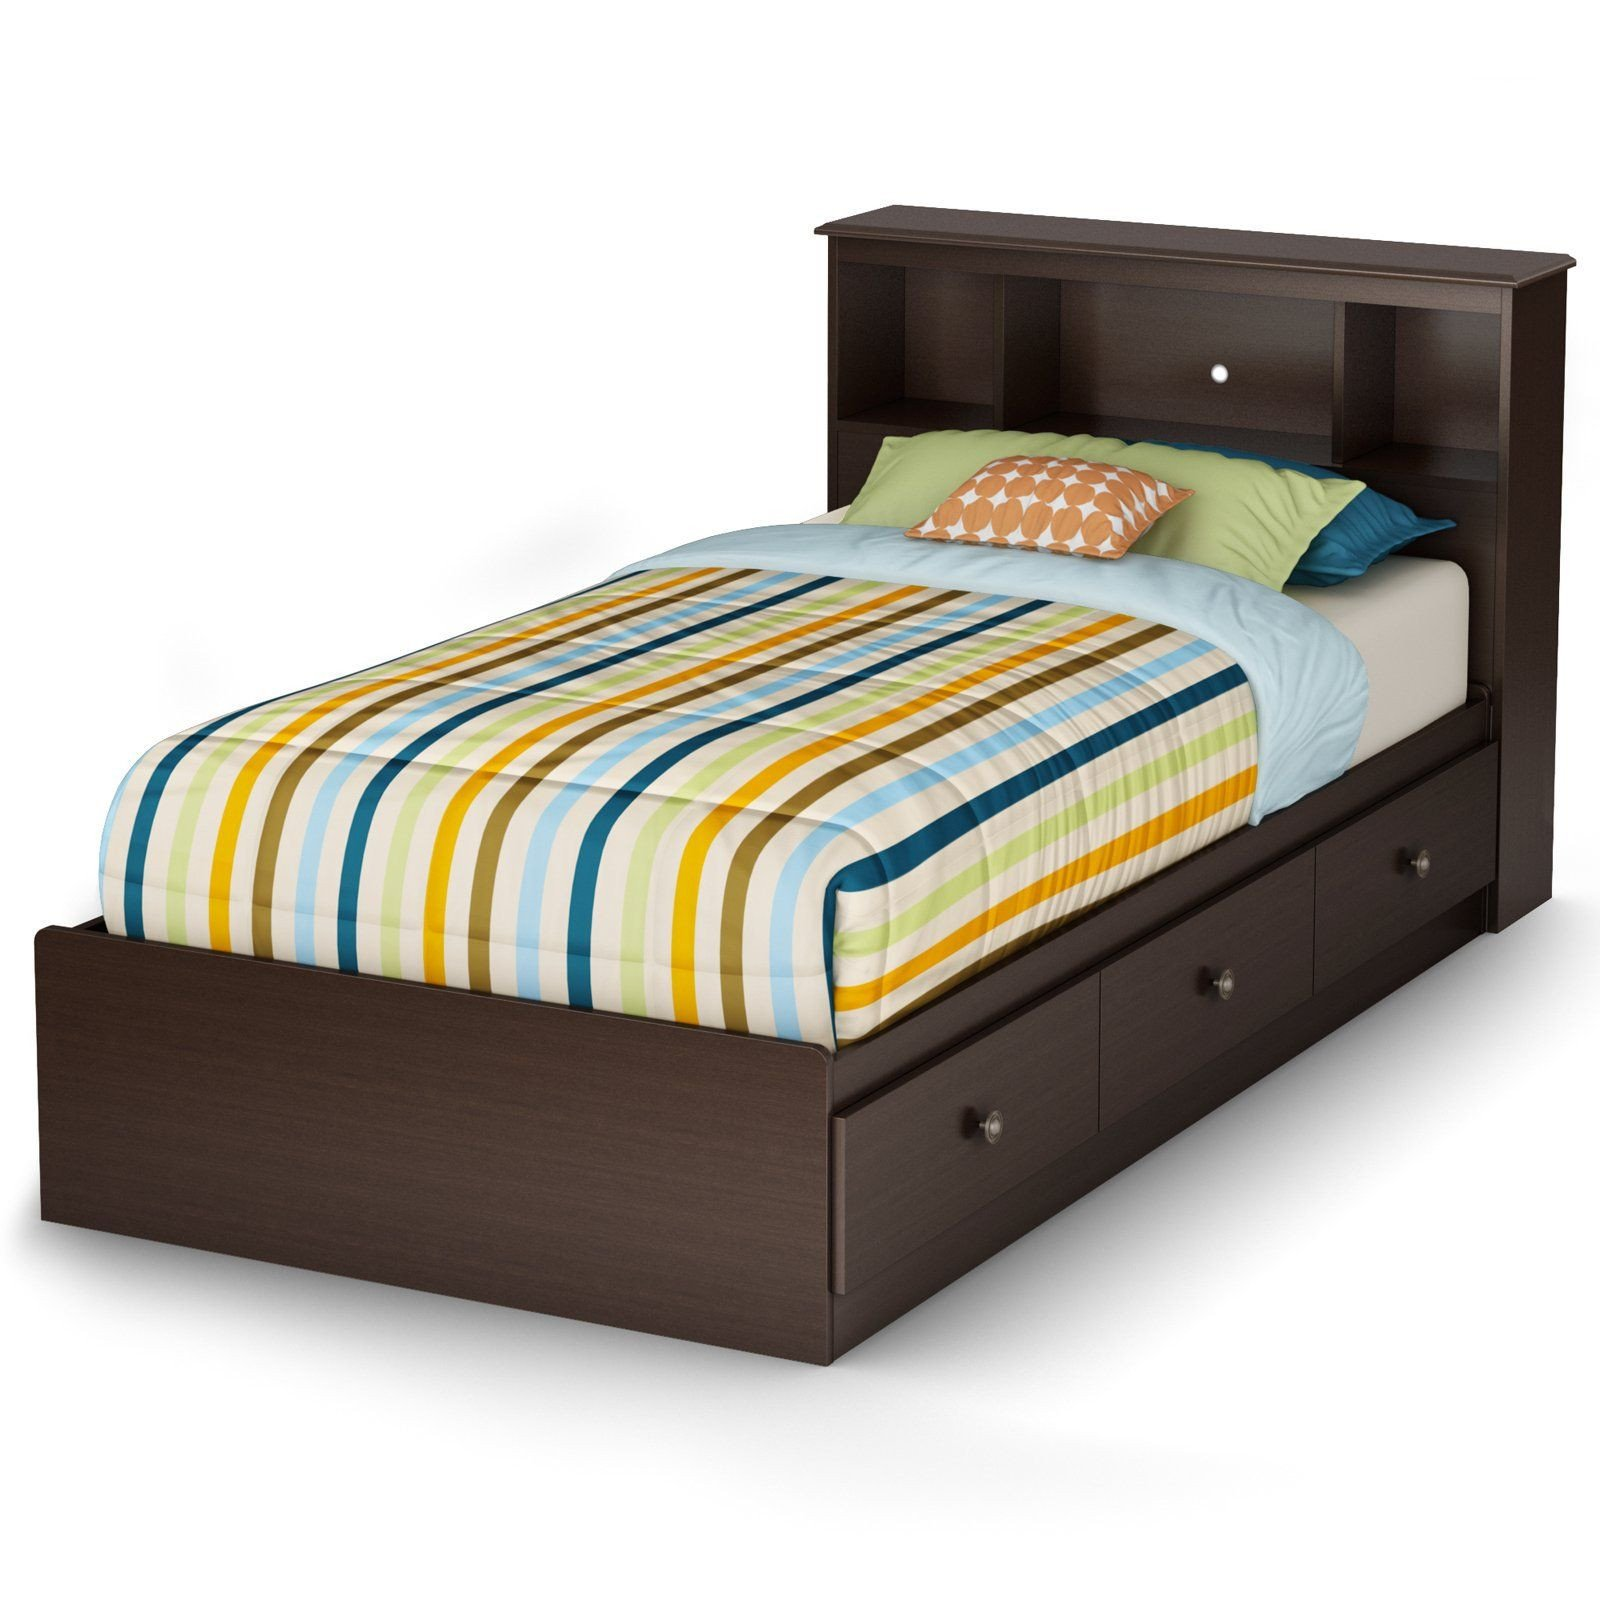 South Shore Bedroom Set Lovely south Shore Zach Collection Twin Bookcase Bed Chocolate